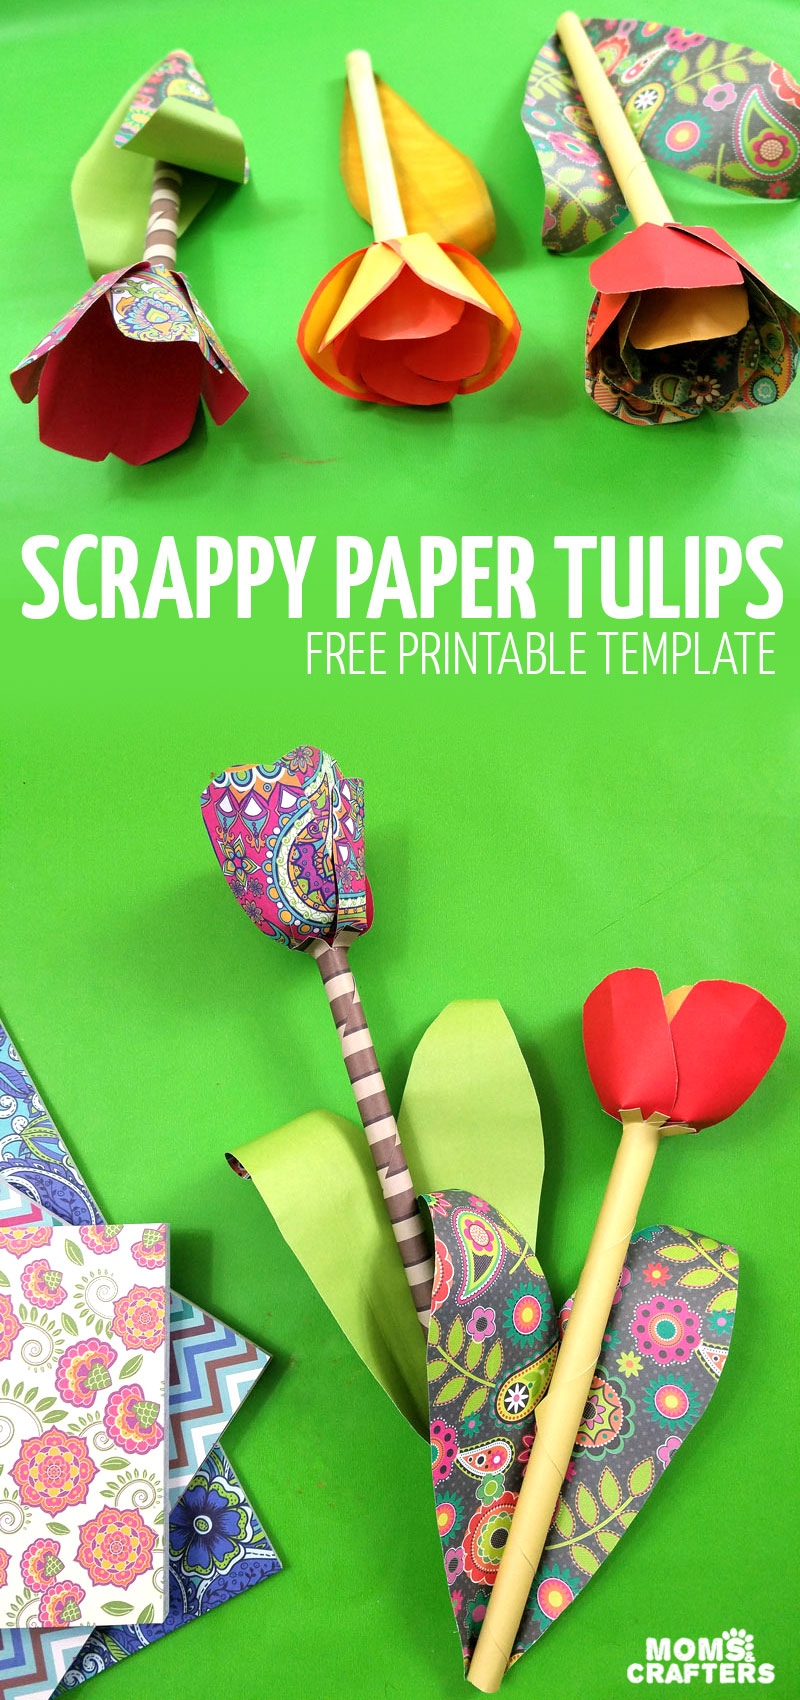 Make your own paper tulips with this free printable paper flower template! Try this fun flower spring craft for teens, tweens, and grown-ups using scrapbook paper or alcohol markers. #papercrafts #paperflowers #momsandcrafters